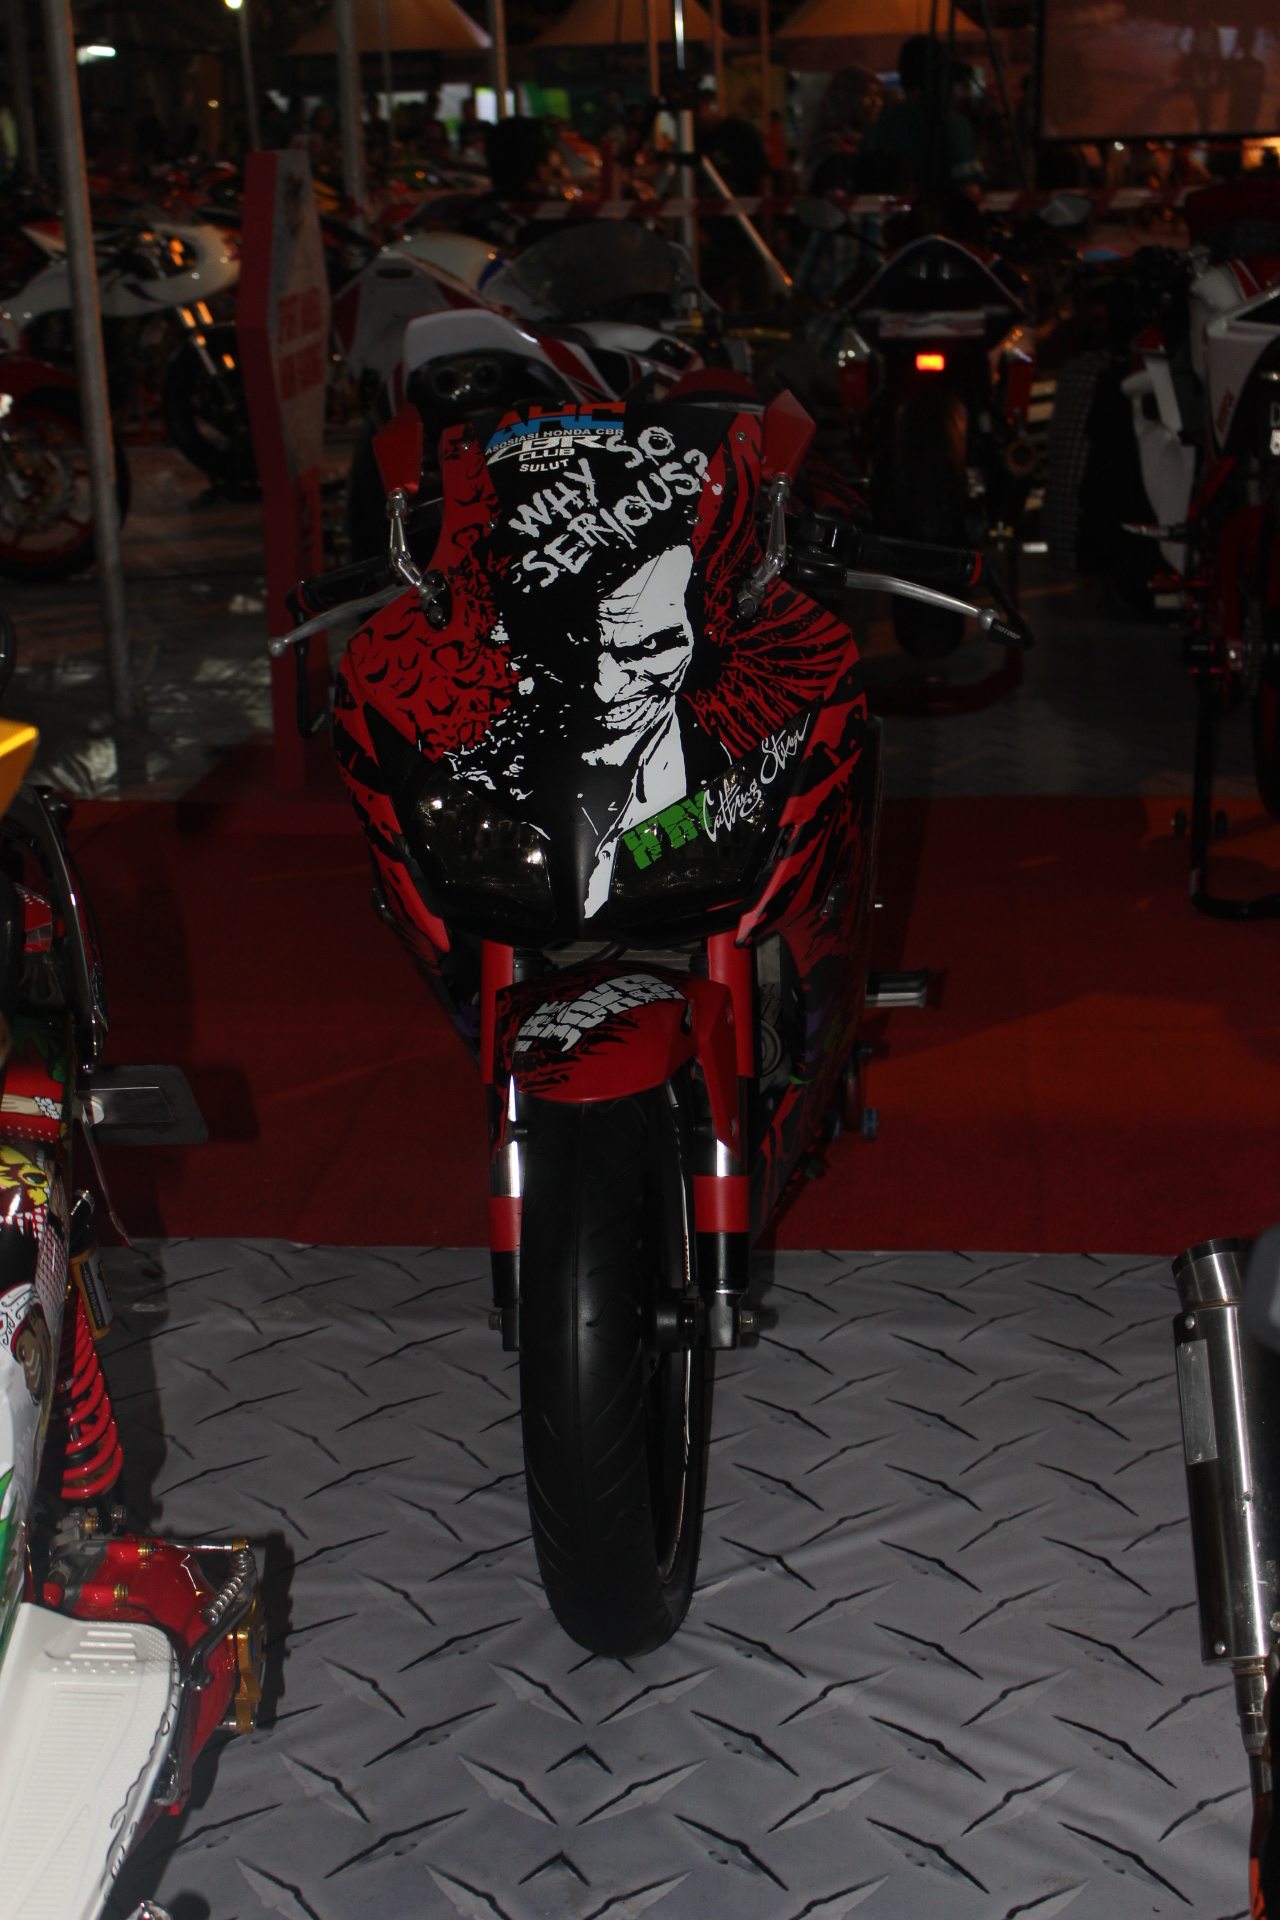 motor-kontes-final-battle-honda-modif-contest-hmc-2016-bmspeed7-com_2246